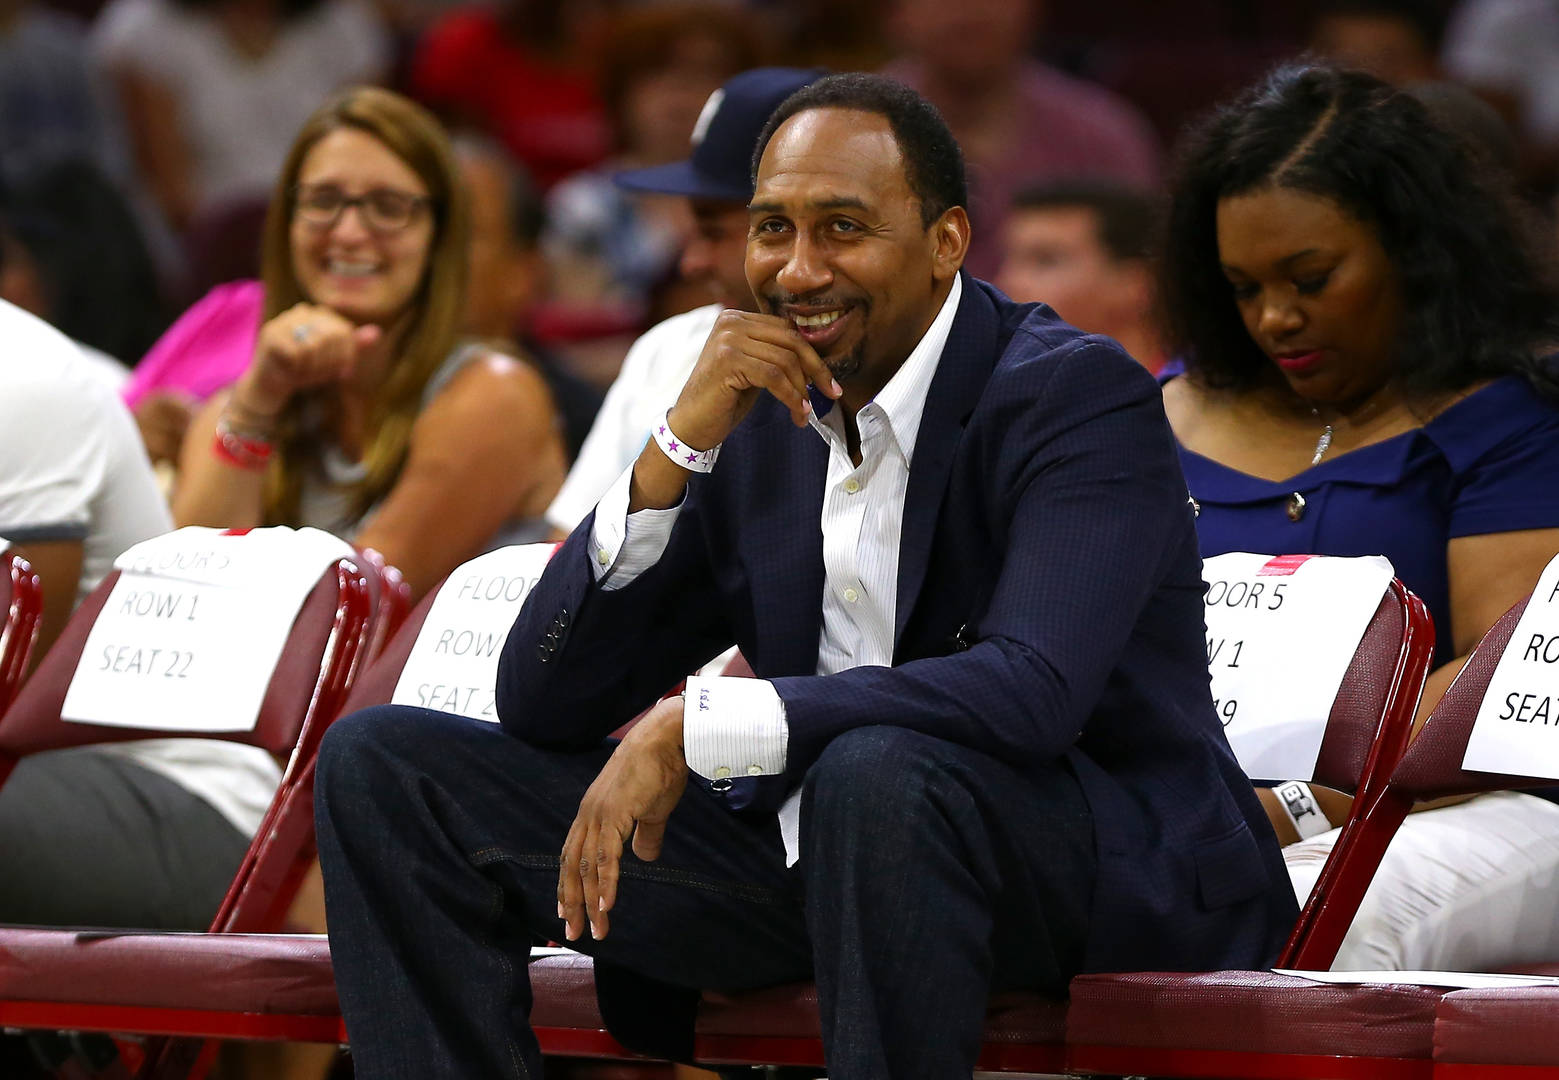 TV personality Stephen A. Smith looks on during week four of the BIG3 three on three basketball league at Wells Fargo Center on July 16, 2017 in Philadelphia, Pennsylvania.